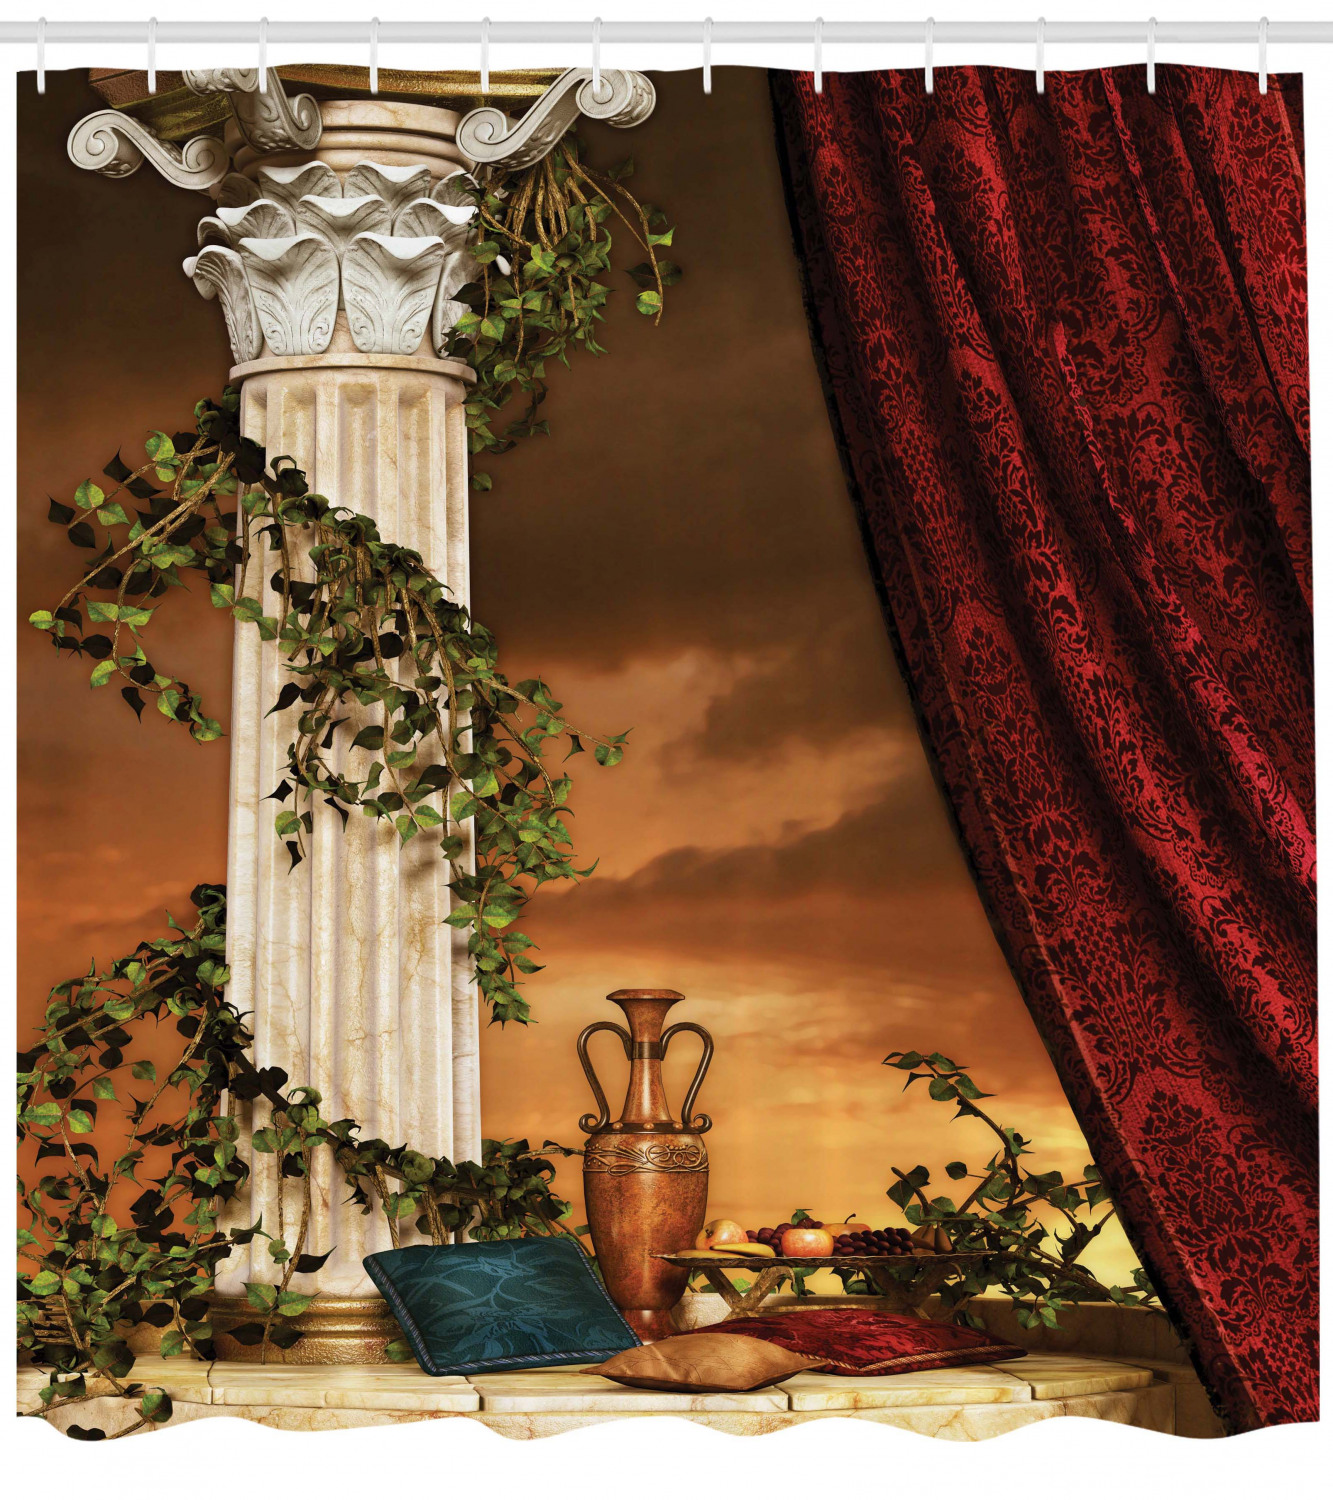 Gothic Shower Curtain Greek Style Scene Climber Pillow Fruits Vine And Red Curtain Ancient Figure Sunset Fabric Bathroom Set With Hooks 69w X 70l